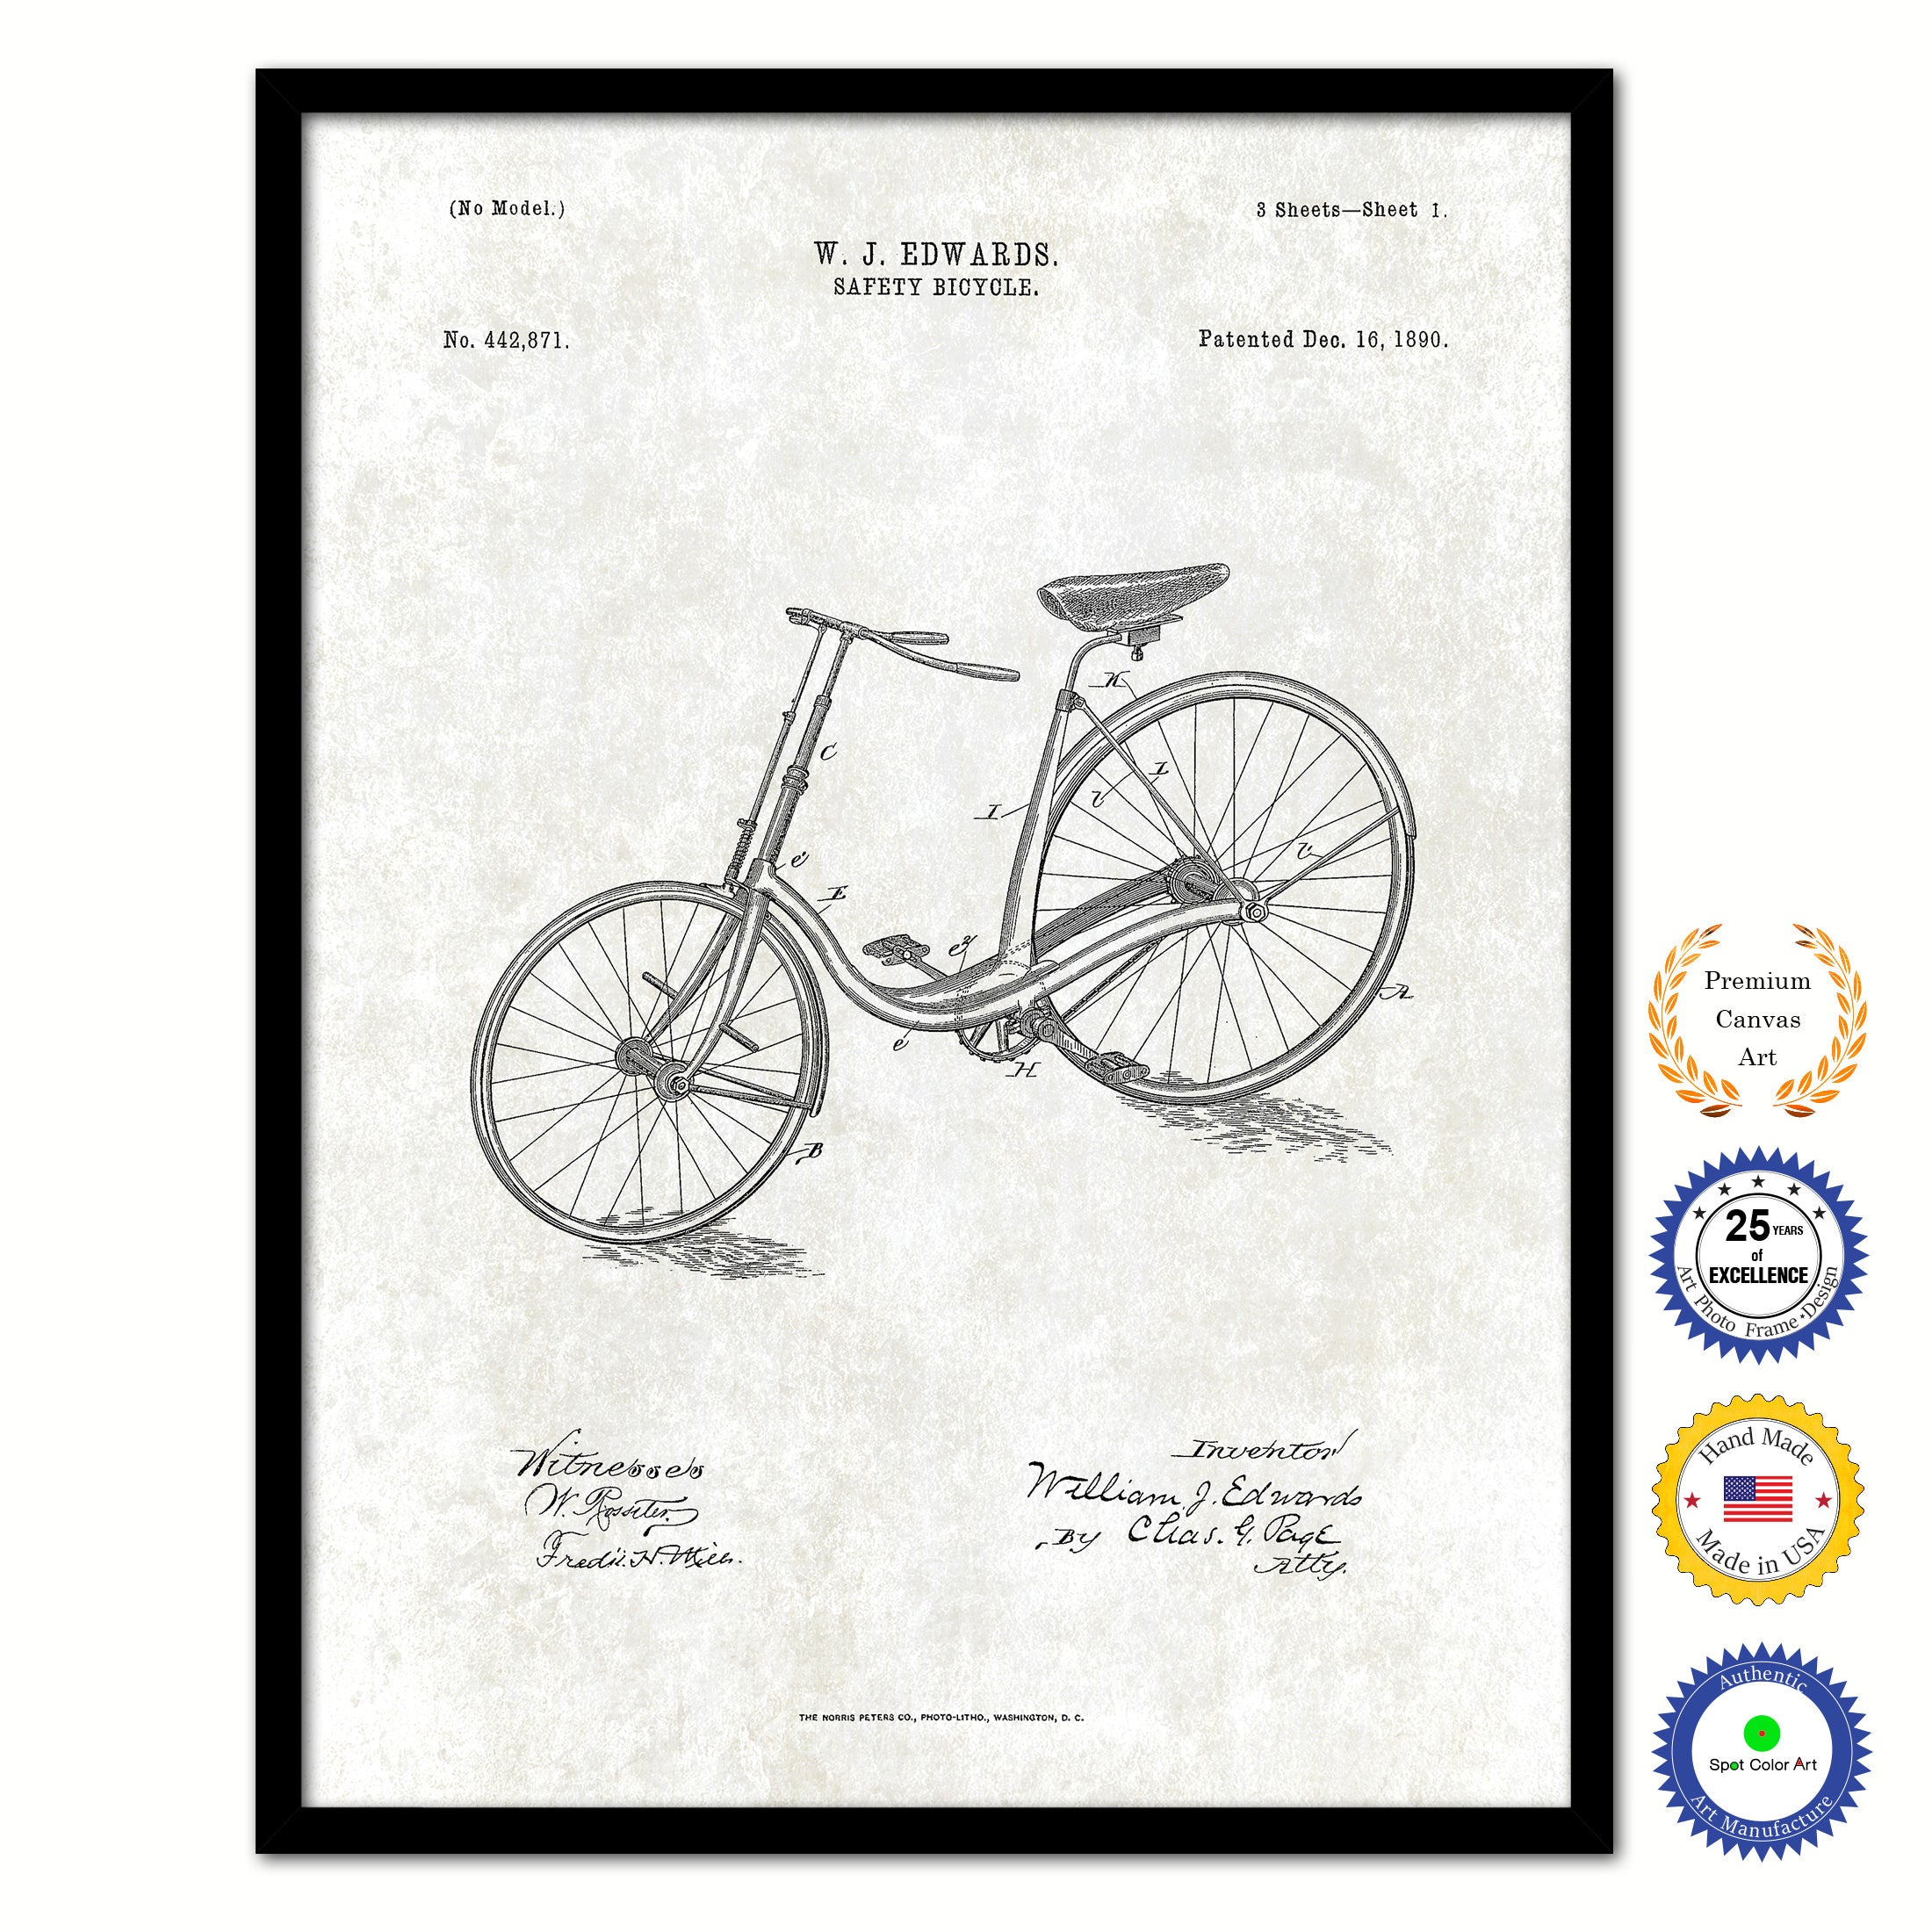 1890 Safety Bicycle Old Patent Art Print on Canvas Custom Framed Vintage Home Decor Wall Decoration Great for Gifts